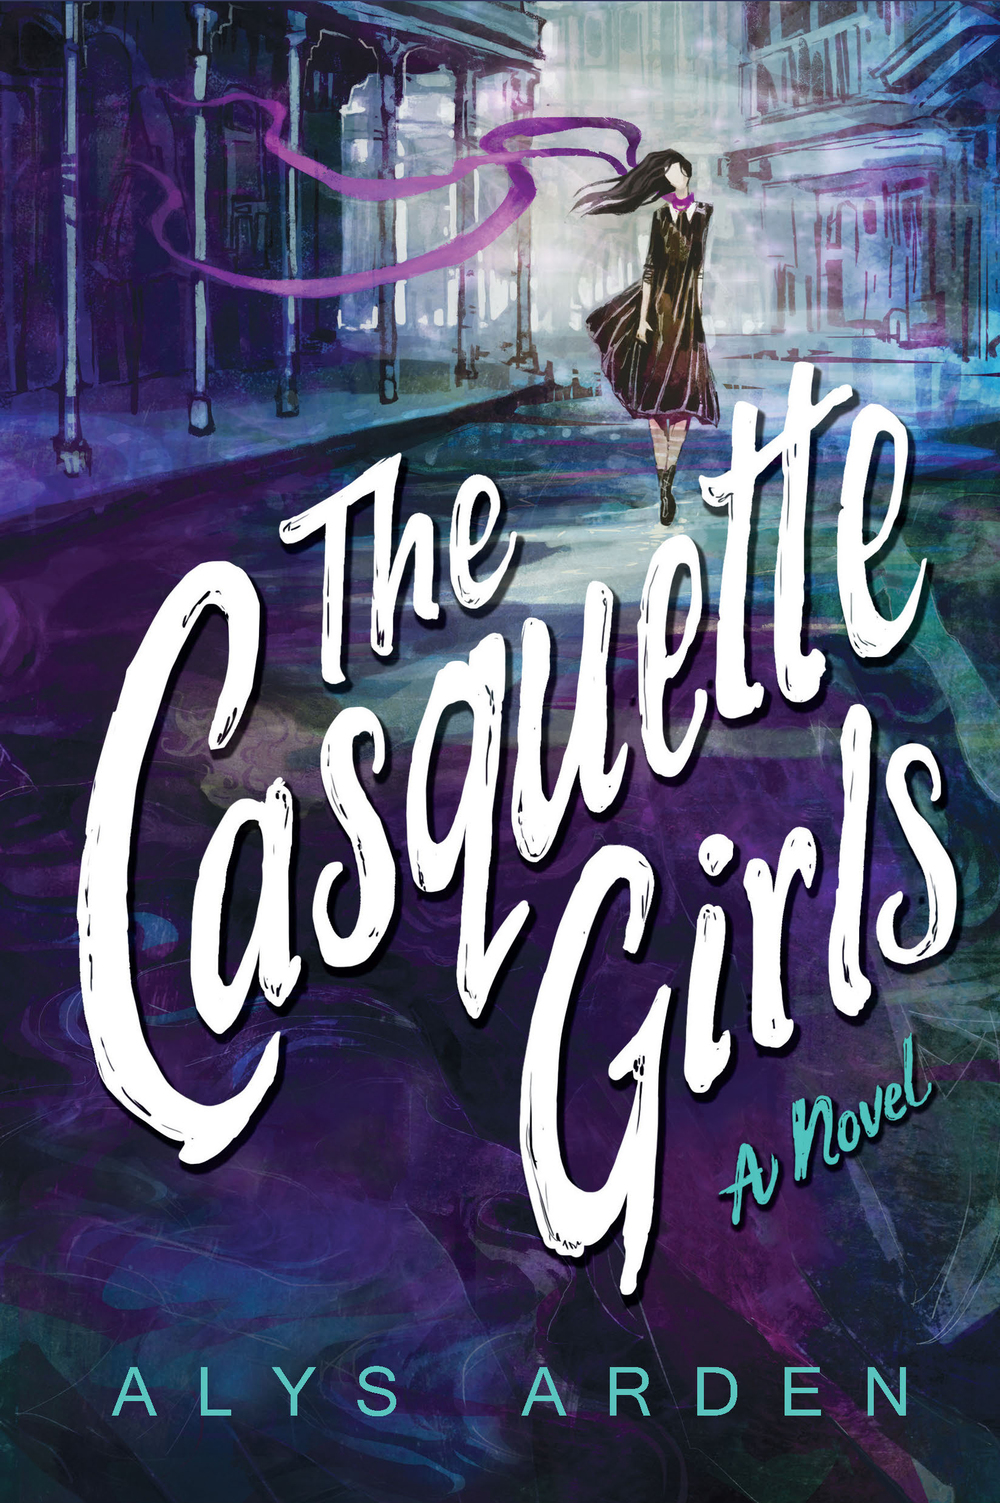 The_Casquette_Girls_cover_art_hg